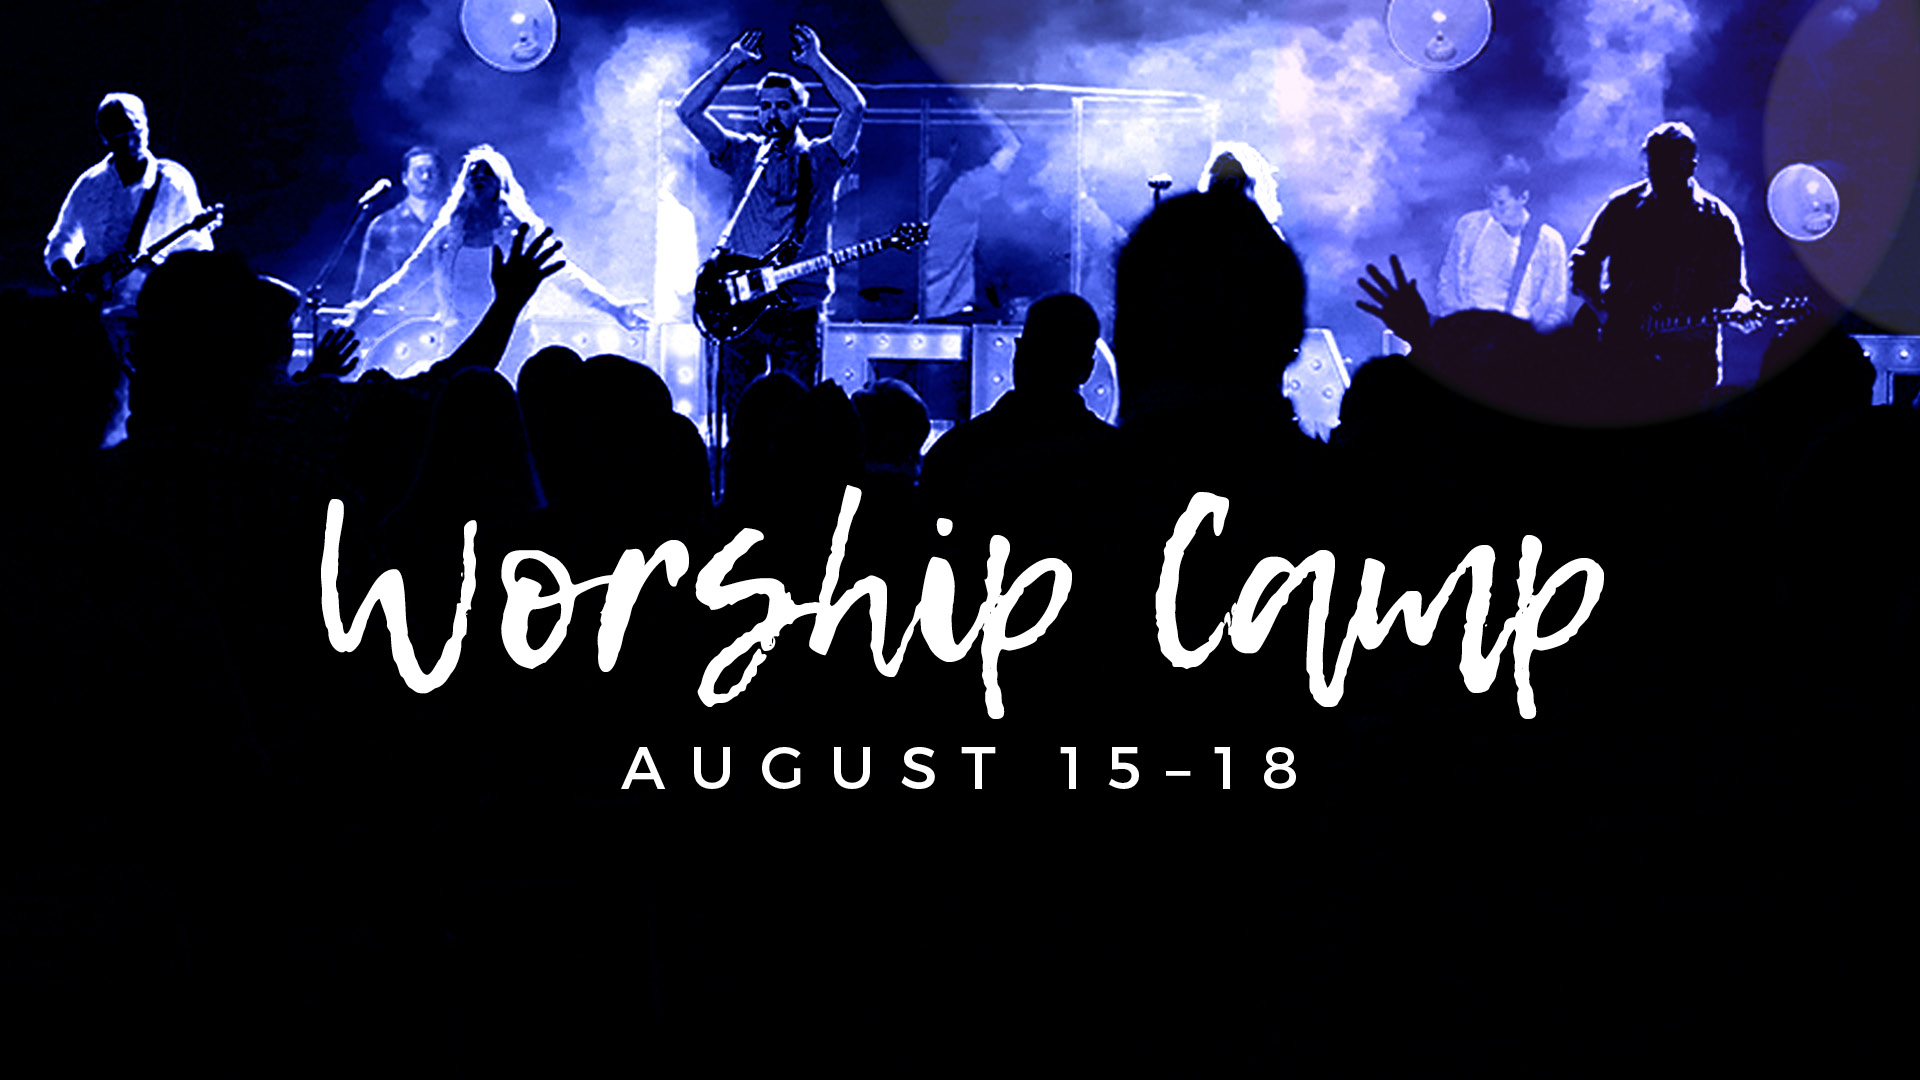 Worshipcamp ppt 1920x1080 4